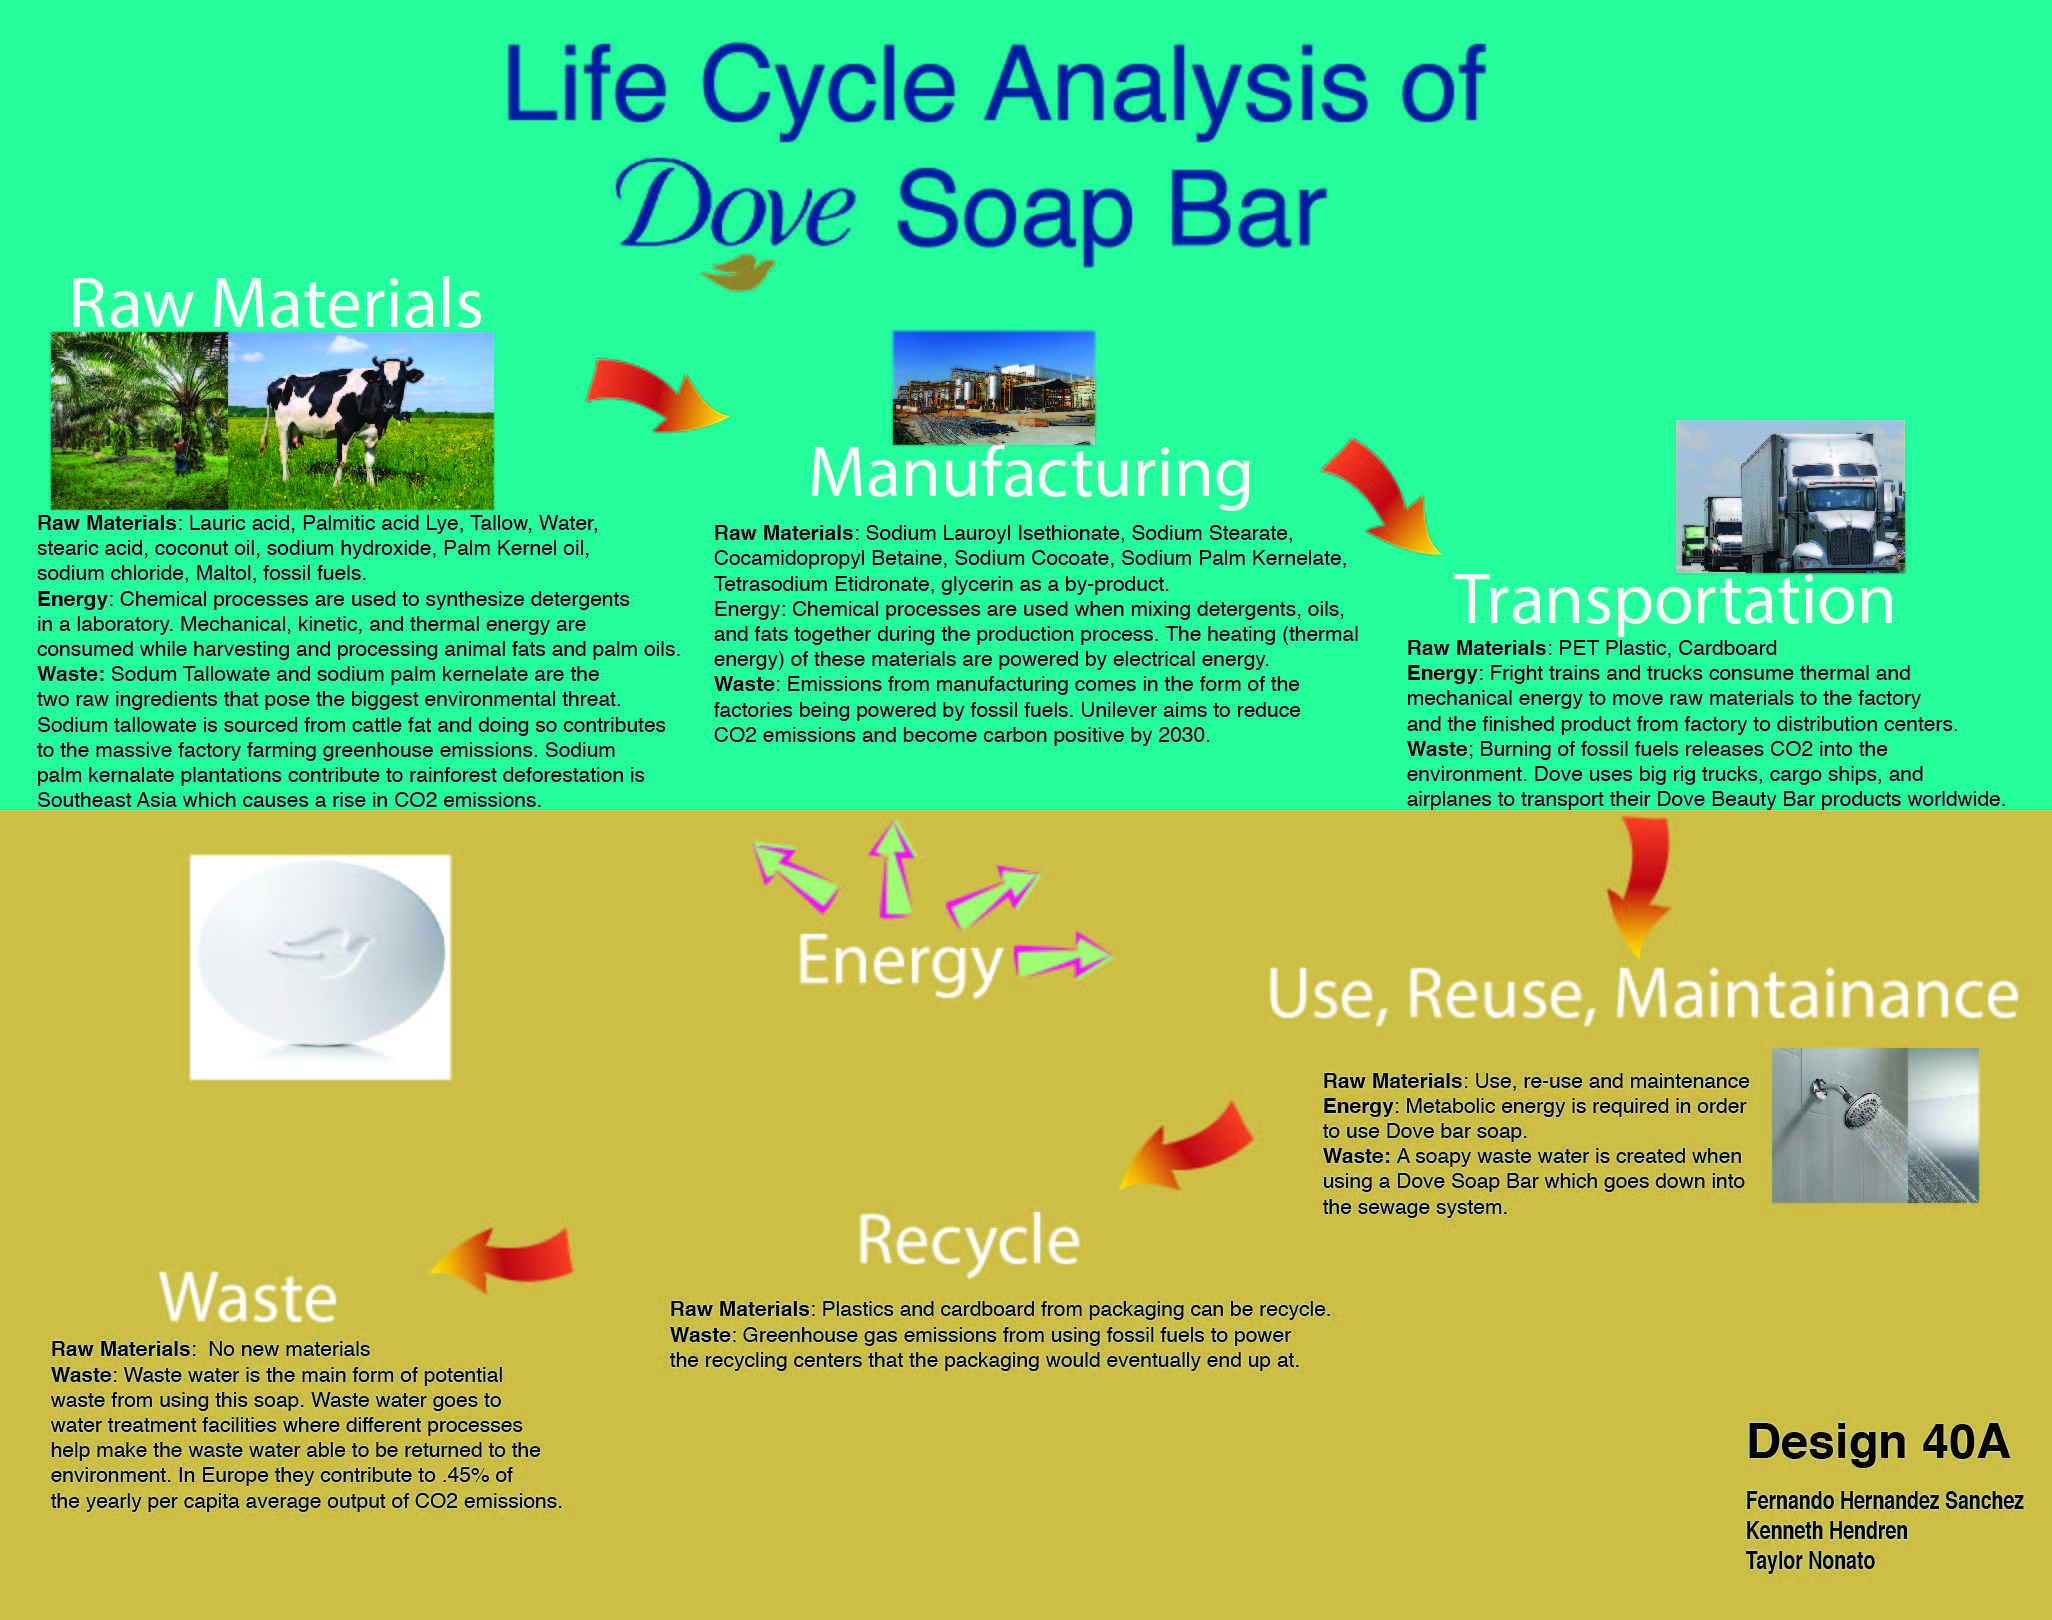 "Fernando Hernandez Sanchez SID:915767548  SAS 43  December 6th, 2018   Life Cycle Research Paper    Materials    Introduction   The White Beauty Bar soap is one of the many products of Dove's Skin Cleansing line. Dove claims this soap will give people softer, smoother, more radiant skin in comparison to any ordinary soap. This soap is mainly used for nourishing dry skin of face, body, and hands and it is advertised to contain ¼ moisturizing cream that helps retain skins moisture.[1] This bar soap has a variety of ingredients listed on Dove's website, some of them are: Sodium Lauroyl Isethionate, Stearic Acid, Lauric Acid, Sodium Isethionate, Water, Sodium Stearate, Sodium Cocoate Or Sodium Palm Kernelate, and Tetrasodium Etidronate, and is important to mention this soap is not vegan, because it is manufactured from animal fat.  Throughout this paper, besides the ingredients, I will examine which are the primary raw materials extracted, the materials added during the manufacturing process, the transportation and packaging materials, and waste materials. Also, I will determine the waste materials and how these materials can be reused or recycled. The goal of this paper is to evaluate the composition of the materials used to make these bar soaps, and how these materials have an environmental impact throughout the different stages of the life-cycle of the soap with a central focus on Materials.         Raw Materials Acquisition   Soaps are chemical products called surface-active agents or surfactants, these products are ""well-known for their detergency, which is due to a reduction in water surface tension which removes the dirt by wetting, emulsification, lathering, and removal"" [11]. The White Beauty Bar Soap is manufactured by the saponification of fats and oils (triglycerides) of vegetable or animal origin and the neutralization of fatty acids, specifically by saponification of palm oil and some animal fat.  The White Beauty Bar Soap is listed as having a variety of ingredients, however the necessary raw materials involved in the manufacture of soap, these are oils and fats, soda lye and some additives like sodium carbonate and perfumes. For the manufacture of the White beauty bar soap, first palm kernel oil is mixed with tallow, which is fat from cattle, this central combination gives soap its detergency properties. The most common soaps are manufactured by saponification of a combination of lauric oils and hard fats in a ratio of 1/3 - 2/3. [11]  Starting with the primary raw materials needed for the manufacture of the soap, water is needed as a solvent for dissolving the oxidizer, basically, a solvent is always needed, it can either be milk, water or any liquid containing water, this to mix with the oils and make soap.[2] The water used for the manufacture of soap is extracted naturally in the nearest place from the factory.  Vegetable oils and animal fat are other raw materials mentioned in the process of saponification. Animal fat is used to prepared for example Stearic Acid by ""treating the animal fat with water at high temperature leading to the hydrolysis of triglycerides"" [2], once you get the stearic acid, this is used as a hardener in soap. Tallow is one of the most crucial animal-based raw material needed to produce soap. Tallow can be found in cattle fat after extraction Tallow is mixed with Lye to create sodium tallowate which is salt of Tallow and it is used for cleansing [2].  Palm oil is a vegetable prominent primary raw material, specifically Palm Kernel oil, this oil is likely that it comes overseas from Malaysia or Indonesia and is manufactured into glycerin in the United States. Palm oil is used to create secondary raw materials like lauric acid which is found naturally in palm oil, the latter is used as a surfactant and cleansing agent [2]. Another example of a palm oil derivate is sodium palmitate, which is a salt made by mixing Palmitic acid and Lye and adding water, this secondary material is used for cleansing and creating lather [2]. Sodium Palm Kernelate is another surfactant derived from combining Palm oil with an oxidizer such as sodium hydroxide. Also, some other vegetable derived raw materials are; Maltol, used as a flavoring agent occurs naturally in some types of plants and is harvested directly; Sodium Cocoate is used as a surfactant, produced by hydrolysis of the ester linkages in the coconut oil with sodium hydroxide [2].  Finally, sodium chloride is the same as ordinary table salt extracted from seawater by evaporating it; this primary raw material is used as a thickening agent [2].     Manufacturing and Processing   The manufacturing processes of Dove's Bar Soap is classified and not shared with the public, however, the general process is known. A soap production line is made up of tanks and additional equipment for drying and finishing the soap [4]. As mention before, Dove's bar soap is made by the saponification of fatty materials, oils, greases, and tallow, and then ""saponified"" - by soda to obtain hard soap. Apart from the soap, a by-product - glycerin - forms during the chemical reaction."" [11]  In addition to the primary raw materials used to make soap, some secondary raw materials are added during the manufacturing process; Sodium Lauroyl Isethionate is added as wetting agent and emulsifier [2]; sodium stearate is added to help keep emulsions from separating into their oil and liquid components [2]; Tetrasodium etidronate is added during the final stages, this substance is used as a preservative and chelating agent [2]; and finally Titanium dioxide is added as a whitening agent, which makes the White Beauty Bar Soap its distinctive white color.  At the end of the process the soaps are dried and obtained in the form of bars or flakes, depending on the cooling and drying method used, is sent to the finishing line, which gives the soap its final appearance, the soaps are packaged and labeled.     Distribution and Transportation   Once the Dove bar soaps are manufactured, they can be packaged in several size package and presentations, which are later transported to vendors in more than 80 countries. (Dove) the most common package presentation uses a plastic wrapper and a cardboard box. The primary materials for PET plastic wrapper are a derivate of oils and natural gas, these raw materials are transformed to plastic [12] and then this plastic is forced through a die to form a bubble, which later collapses, and forms plastic rolled wrap and finally cut and shaped for packaging. [13] The second part of the packaging is the cardboard box, which primary materials are flute, which is recycled paper, and second-hand paper. These materials are pressed and glued together and then cut for packaging. [14]     Use, Re-use, and Maintenance   Water is needed to use Dove Bar soap, to create foam to apply to skin. Once the bar soap is used it can be re-used several times until the soap is used entirely. Also, there are some other ways to re-use bar soap, for example, people can melt the bar soap or the remainders of it and then add water to create a shampoo-like product. There is no maintenance needed for Dove bar soaps, the customer would need to go purchase more bar soaps once they run out. In addition, glycerin, which is a by-product formed during the manufacturing of soap, can be repurposed, Unilever re-uses glycerin from other products and incorporates it into other Dove products such as shampoo.     Recycle & Waste Management   There are no new materials added to recycle soap because the bar soap cannot be recycled. Although the soap cannot be recycled, the PET plastic wrapper is completely recyclable however the process difficult, and the cardboard container can be recycled as well. The user would just dispose of the packaging in the recycle bin and the plastic components are melted and can be used in other new products. The cardboard container is triturated and mixed with recycled paper, cardboard and other components to create new cardboard that can be repurposed. At the end of the Dove bar soap life-cycle, there are no new materials incorporated for waste management. One last thing to consider of the Soap's life-cycle would be the water ""contaminated"" by the soap, which this water would go through the drain and down to a water treatment plant where I presume to use the various chemical to treat the water.     Conclusion   Besides the raw materials and their physical characteristics, I understood that Dove's soap has a considerable impact on the environment, this seeing it from the materials perspective, this soap is not considered vegan nor animal-free testing. To manufacture this soap, it is required palm oil and animal fat which the extraction of these materials generate an environmental hazard. Most of the materials used in soap will end up in the water in sewers which in significant concentrations can damage the water quality. On the other hand, I found necessary to mention that Unilever mission to decrease waste regarding their packaging is working, by making the soap's packaging completely recyclable. Besides, Dove uses one of the by-products produced during the manufacturing process, by taking glycerin and adding this by-product to another Dove products like shampoo and other detergents.  During my research I learned that there are various forms of manufacturing soap, depending on the final characteristics a company may be looking for, they must consider which materials they should use and must understand the logistics of the acquisition of the raw materials and all the complications it involves. I acknowledge the chemical complexity of manufacturing soap, I notice how every ingredient in the White Beauty Bar Soap has a specific reason to be added. I understood in depth the main primary materials used to make this kind of soap specifically, the origin, how they are extracted, when in the process of manufacturing they are added and what are the properties these materials give to soap overall.       I. Bibliography   1. ""White Beauty Bar.""  Dove US ,  www.dove.com/us/en/washing-and-bathing/beauty-bar/white-beauty-bar.html .  2. ""Dove Ingredients Explained."" Alabu Skin Care,  http://www.alabu.com/dove-ingredients/   3. ""Dove, White Beauty Bar"" Smart Label,  https://smartlabel.labelinsight.com/product/2746633/nonFoodIngredients   4. ""Soap"" How Products are Made,  http://www.madehow.com/Volume-2/Soap.html   5. ""Soap"" Wikipedia.org,  https://en.wikipedia.org/wiki/Soap   - Image: ""Soap and Detergent manufacturing process""  https://commons.wikimedia.org/wiki/File:Soap_and_Detergent_manufacturing_process_03.png   6. "" Soaps & Detergents: Manufacturing"" American Cleaning Institute,  https://www.cleaninginstitute.org/clean_living/soaps__detergents_manufacturing.aspx   7. ""Chemistry of Soaps and Detergents:Various Types of Commercial Products and Their Ingredients"", MARCEL FRIEDMAN, PhD. Elsevier Scince Inc. 1996,  https://www.cidjournal.com/article/0738-081X(95)00102-L/pdf   8. Spitz, Luis, ed. "" Soap Manufacturing Technology"", 2nd Edition. Elsevier Inc. 2016   9. EWG's Skin Deep Cosmetic Database,  https://www.ewg.org/skindeep/   10. ""Waste & packaging"" Unilever,  https://www.unileverusa.com/sustainable-living/the-unilever-sustainable-living-plan/waste-and-packaging/index.html   11. Soap Production (CDI, 1995, 70 p.) NGO. http://www.nzdl.org/gsdlmod?e=d-00000-00---off-0edudev--00-0----0-10-0---0---0direct-10---4-------0-1l--11-en-50---20-about---00-0-1-00-0--4----0-0-11-10-0utfZz-8-00&cl=CL1.19&d=HASH4433a1e037444ddb56a0c1.10&x=1   12. ""An Introduction to PET."" Fact Sheet - An Introduction to PET (Polyethylene Terephthalate)  http://www.petresin.org/news_introtopet.asp   13. How products are made. Advameg Inc (2018)  http://www.madehow.com/Volume-2/Plastic-Wrap.html   14. ""How a cardboard box is made"" The Manufacturer (2014)  https://www.themanufacturer.com/articles/how-a-cardboard-box-is-made/         Taylor Nonato  Des040a  Professor Cogdell  6 December 2018  Cradle to Grave Analysis: Embedded Energy within a Dove Soap Bar  Soap has been used to maintain personal hygiene as far back in history as the elite upper class of Ancient Rome and Greece, who experimented with different oils to clean their skin. Today, soap making has evolved from these experiments from a handcrafted luxury item into one that is accessible and essential to most of the developed world. Among the many different brands seen in a convenience store, one of the most popular brands of bar soap is by Dove. Founded by the Lever Brothers Co. in 1957, the first product Dove sold was bar soap [3]. Dove is managed by its parent corporation Unilever, who facilitates the manufacturing and shipping of Dove and many other popular brands. The product of interest, Dove bar soap, is made using a lengthy list of synthetic detergents or lyes and oils throughout its production [2]. Although the exact recipe for the production of Dove soap bars remains undisclosed, common large scale manufacturing use a soap-making technique known as the continuous method. This process in its simplest form involves heating the mixture of detergent lyes, salts, and oils, separating byproducts, and cooling the product until it reaches its final state as a bar of soap. This process consumes a wide range of distinct types of energies that the general population has the tendency of overlooking. While the literature on the total and exact energetic costs of Dove soap bars remains largely invisible, some inferences can be made in most areas within Dove's production process using logic and general known processes for producing soap bars. As environmentally responsible human beings, the best we can do is to research and continue to ask more questions about exactly where and how the common items are produced and what are the different energies are used in the manufacturing a product. Although soap is simple in use, the embedded energetic costs due to its manufacturing and shipping methods are significant. By attempting to trace back the Dove bar through raw material harvesting methods, production processes and shipping methods, the type of energies will become evident to the consumer.  For each bar of soap that is produced by Dove, a considerable amount of raw materials need to be harvested. This inherently requires the use of many forms of energy to both extract and transport the materials to a factory where the materials will eventually become the Dove bar soap sold in convenience stores worldwide. While there is a much longer list of complex materials that vary in structure, form, and name, the list can be condensed into a few major raw materials. Alkali detergents chemicals, fats, and oils are essential to the basic process of soap making and each material has its own independent method for harvesting or synthesizing [2].  In a laboratory, the production of synthetic alkali detergents involves chemical reactions that turn simple starting molecules into those making up the necessary detergent chemicals that will eventually be used within Dove bar soap to clean the skin [10]. The chemical processes required demand thermal, kinetic, and electrical energy to facilitate the elementary reactions that make the detergent. These alkali detergents are most likely synthesized and sold to Dove, and therefore needs to be shipped to a Dove factory. By virtue of the geographic area of other raw materials and the ""Made in China"" label, these detergent chemicals will be produced in a factory in China and shipped via ground-based vehicles. Unilever and Dove have started (as of 2017) to ship using rail methods wherever possible [6,7]. A diesel freight truck (134 miles per gallon) and potentially a freight train (470 miles per gallon) will ship the processed detergent chemicals to a factory also located in China, where it will be further processed [5].  The next raw material that must be acquired and processed through some form of energetic means is animal fat. This fat is used in supplementary chemical reactions in order to produce a salt that is known as sodium tallowate, which is used as a skin moisturizer and requires the use of both thermal, chemical, and electrical energy types [8]. Tallow, which is generally made from the fat of cattle, is then chemically combined with sodium (Na+) to form the salt. Sodium tallowate will have a high probability of being manufactured in China, due to the extensive amount of fat and oil production that is present in the country [4]. With production remaining domestic, this allows sodium tallowate to be shipped through ground-based vehicles, requiring another factor of mechanical and kinetic energy.  The last key raw ingredient that needs to be extracted is palm oil. Grown on plantations in the tropical regions of Indonesia and Malaysia, palm trees are harvested for its fruit via farm workers year-round [13]. The fruit is then loaded onto a vehicle to be transported to a separate facility where it can be processed into its conjugate oils. Palm fruits are boiled and pressed resulting in crude palm oil that is then refined and further processed, sold, and shipped to companies such as Dove. In the same Unilever and Dove initiative to switch to rail methods, the companies are also attempting to switch to sea transports when possible in order to reduce emissions [7]. Due to the fact that the palm oil industry is present on tropical islands, it would be most logical to use freight ships to transport palm oil to corresponding Dove factories. From a simple palm fruit to palm oils, this process alone requires an aggregate of energy sources: thermal, kinetic, mechanical, and chemical energies are used in order to bring palm oils to Dove factories.  The number of required sources of energy starting at the processing detergent chemicals, animal fats, and palm oils is staggering. The trend of the magnitude of energetic costs only continue to rise moving from the harvesting to the production phase.  The large-scale production of bar soap generally involves a process known as the continuous method. As the name suggests, this process is continuous in that it does not stop and therefore consumes massive amounts of energy every second. Large commercial kettles are fed the raw materials mixture of detergent lyes, oils and fats. The mixture is heated and undergoes what is known as the saponification process [9]. The boiling alone may take several days, consuming large amounts of thermal and electrical energy. This results in a concoction that, when cooled and cut into blocks, result in the general form of soap that is seen in bathrooms all over the world. The continuous method, while relatively straightforward, requires an enormous amount of energy, implementing the likes of thermal, mechanical, kinetic, electrical types in order to produce soap bars. The finished product is then packaged, leading to the final major area that Dove soap bars consume energy, the shipping process to distributors all over the world.  Unilever, and consequentially Dove, ship their soap bars and other products, using freight trains, trucks, and ships [6]. Depending on the geographic location, distribution plants may reside domestically or internationally. It is possible that only freight trains and trucks will be used. On the other hand, all three methods of shipping and transportation may be necessary to get the bar soap to its final destination. Regardless of the shipping method, there are substantial inputs of thermal, kinetic, and mechanical energy used in order to move bar soaps from factory to distribution. The inferred sum of the energy consumption throughout the entire process is staggering. For such a small and simple object, the implications of this energetic cost have a direct impact on the environment while also possessing underlying ethical and societal consequences.  While the energetic costs of a soap bar produced by Dove may seem unimportant to the layman, the magnitude of the energetic costs that were required to produce the bar soap is significant to raise concern. Using what is known from the extraction, production, shipping, and manufacturing process, Dove bar soap spans many energetic types. This results in a huge amount of energy to be used. Although an exact value of energy usage will certainly not be given by Unilever and Dove for its bar soap, it can be reasoned out by virtue of the vast quantity and types of energies that were used. With a strong correlation between an increase usage of energy to an increase in global greenhouse gas emissions that further induces rapid climate change, this should perturb consumers globally. Although it is not feasible to stop production of corporations who make millions of dollars from their products, having more of the general population aware of the energetic costs and its impact on the environment is a major key of success. If enough of the people are aware of the significance by which a simple object such as bar soap has on the environment, it can spur more rapid changes in the methods and energies companies use not just in the production of Dove bar soap, but in every product that is sold in the convenience store.       Bibliography   ""Dove Beauty Bars Sensitive Skin 2Pk"". EWG'S Skin Deep Cosmetic Database.  https://www.ewg.org/skindeep/product/677161/Dove_Beauty_Bars_Sensitive_Skin%2C_2_pk/ .  ""Dove Ingredients Explained"". Albu Skin Care.  http://www.alabu.com/dove-ingredients/ .  Falotico, Laura. ""Dove- Brand Evolution"".  slideshare.net , 2018,  https://www.slideshare.net/laurafalotico/dove-brand-evolution . Accessed 2 Dec 2018.  ""Fats and Oils Industry Overview"". IHS Markit. November 2018.  https://ihsmarkit.com/products/fats-and-oils-industry-chemical-economics-handbook.html .  ""Fuel efficiency"". CSX.  https://www.csx.com/index.cfm/about-us/the-csx-advantage/fuel-efficiency/ . Accessed 2 Dec 2018.  ""Our Greenhouse Gas Footprint"". Unilever.  https://www.unilever.com/sustainable-living/reducing-environmental-impact/greenhouse-gases/Our-greenhouse-gas-footprint/ .  ""Reducing Transport Emissions"". Unilever.  https://www.unilever.com/sustainable-living/reducing-environmental-impact/greenhouse-gases/reducing-transport-emissions/ .  ""Soap"". How Products are Made.  http://www.madehow.com/Volume-2/Soap.html .  ""Soap Production"". Human Info NGO Education and Development Library. 1995.  https://www.csx.com/index.cfm/about-us/the-csx-advantage/fuel-efficiency/ .  ""Soaps & Detergents: Chemistry"". American Cleaning Institute.  https://www.csx.com/index.cfm/about-us/the-csx-advantage/fuel-efficiency/ . Accessed 2 Dec 2018. ""Transforming the Palm Oil Industry"", Unilever,  https://www.unilever.com/sustainable-living/reducing-environmental-impact/sustainable-sourcing/transforming-the-palm-oil-industry/   ""Soaps and Detergents Book"". Soap and Detergent Association.  https://www.cleaninginstitute.org/assets/1/AssetManager/SoapsandDetergentsBook.pdf .  ""Unilever's Supply Chain"". Unilever.  https://www.unilever.com/Images/unilever-supply-chain-overview---may-2018_tcm244-523172_1_en.pdf .  ""What is palm oil?"". Green Palm Sustainability. 2016.  https://greenpalm.org/about-palm-oil/what-is-palm-oil .    Kenneth Hendren  Des 40A, Sec 5  Professor Cogdell  11/15/18  Waste & Emissions Dove Beauty Bar  The Dove Beauty Bar is a household name which you can find at any grocery store or pharmacy within the United States. It is estimated that 117.19 million Americans used Dove in their daily hygiene practices(Statista). A life cycle analysis is the inspection of a product from the fundamental chemicals that compose of it, to the production process, and finally where it ends up in the world in terms of waste. A profound component of any life cycle analysis is the evaluation of the waste and emissions that a product possesses. This paper will be looking at Dove Beauty Bar's waste and emissions throughout its entire life cycle and the role the parent company Unilever has in mitigating such potential. The main stages of potential waste the Dove Beauty Bar are from its manufacturing and transportation, consumer recycling and waste water with the product, and the source of the raw materials used in its product. Unilever has made great efforts over the years to reduce their carbon footprint in manufacturing and transportation, however, the source of the raw ingredients used in Dove Beauty Bars pose the greatest environmental threat.  Unilever, the parent company of Dove has made great strides in recent years to reduce their carbon footprint in the modern world. They take pride in making their business model as sustainable as possible, ""In 2017, our factory sites reduced CO2 emissions from energy by 47% per ton of production compared to 2008(Unilever)."" Throughout hours of research there was unfortunately not any more specific statistical information regarding the Dove Beauty Bar alone in regard to factory specific CO2 emission reduction. Unilever owns more than one hundred and sixty brands, and with all of those brands manufacturing unique items themselves it's impossible to know just how much Dove is doing to reduce its CO2 emissions. When Unilever was contacted directly for more specific information regarding the Dove Beauty Bar they simply replied back with a link to their website with generalized information. There was also no way to find out about any factory specific conditions for the workers or waste water. Unilever has an ambitious mission to become completely carbon positive by 2030. According to their website this means that Unilever will, ""Source all our electricity purchased from the grid from renewable sources by 2020, Source 100% of our energy across all our operations from renewable sources by 2030, Eliminate coal from our energy mix by 2020, and directly support the generation of more renewable energy than we consume, making the surplus available to the markets and communities where we operate by 2030(Unilever)."" By committing to becoming carbon positive, Unilever will greatly reduce its rate of emissions from its production of products. Renewable energy and the removal of coal powered operations is essential to lowering the levels of carbon emissions from their production factories. The only byproduct that comes from the continuous saponification process is glycerin which Dove more than likely uses in manufacturing other products (Chagrin Valley)."" Unilever is making amazing commitments for the future of their production processes and the same could be said of their transportation efforts as well.  Unilever doesn't finish their ambitions at the production level, they know and understand the impact that transportation has on the environment. The threat transportation has on the environment stems from, ""burning fossil fuels like gasoline and diesel releases carbon dioxide, a greenhouse gas into the atmosphere. The buildup of carbon dioxide is causing the Earth's atmosphere to warm, resulting in changed to the climate we are already starting to see today(EPA)."" Dove uses big rig trucks, cargo ships, and airplanes to transport their Dove Beauty Bar products worldwide. There is absolutely no way for Dove to not contribute to climate change. So long as there is a demand for their product, they will have to ship it to the consumer and carbon emissions will be present. However, Unilever is aware of the amount of carbon emissions they produce in the sector of transportation and have made efforts to reduce the overall amount in any feasible way that they can. Unfortunately, there is no readily available information on the average amount of carbon dioxide emissions that a shipment of Dove Beauty Bar's would normally emit. Unilever state on their website that, ""since 2010, we've achieved a 31% reduction improvement in our CO2 efficiency through reducing the overall number of kilometers travelled, avoiding wasted journeys, and switching to greener transport options(Unilever)."" They are making efforts to, ""establish the most efficient routes(Unilever),"" while simultaneously focusing on, ""how we load each lorry, making sure we use the maximum space available and weight allowed(Unilever)."" These decisions surely have a substantial impact on the reduction of carbon dioxide emissions as Unilever ships Dove Beauty Bar's from their factories to retail stores. When the situation allows for it Unilever has also stated that they, ""switch from road journeys to rail and sea freight(Unilever),"" which results in lower carbon dioxide emissions overall. Unilever will continue its mission to reduce carbon emissions when transporting their Dove Beauty Bar, but the reduction of waste does not solely fall on the producer of the good, but the consumer as well.  The consumer of a Dove Beauty Bar plays a role in the mitigation of waste. The first major way in which the consumer contributes to the mitigation is by the means of how they use the product. The average consumer is going to use the Dove Beauty Bar in a shower, a bath, or while washing one's hands. All three of these methods will have the same destination for the waste water as it goes down the drain in one's home which is either a septic tank or more commonly a wastewater and sewage treatment plant(Melin). With the focus being on the more common treatment plant the water will first, ""go through a primary or mechanical treatment where 60% of suspended solids are removed(Melin)."" After the initial step the wastewater goes on to, ""a secondary treatment where aerobic bacteria breaks down the soap, detergent…(Melin)."" For the final step in the process, ""the water goes through a tertiary treatment where it is filtered and disinfected so it can be released back into the environment(Melin)."" The Dove Beauty Bar remnants within the water such as sodium tallowate will be broken down by aerobic bacteria in the second phase of the process. With the use of water treatment facilities there is not any major pollutants caused by the Dove Beauty Bar that end up making their way through the entire process which would pose a threat on the environment. However, a study was done to investigate the carbon footprint of waste water treatment facilities and was able to find that they contribute to, ""0.45% or the yearly average per capita CO2e emission in Europe (Parravicini, Vanessa, et al)."" Although it's not a substantial number in comparison to what other sector's carbon footprints are, it is wise to note that waste water treatment plants do in fact contribute to pollution and carbon emissions. The longer one chooses to run water while using Dove Beauty Bar, the greater the amount of waste water the factories will have to process, thus contributing more to overall carbon emissions. The Dove Beauty Bar makes no claims to be completely biodegradable so its advised to not use this product in a natural environment such as a lake or river. One example of a detrimental effect of using a soap in a natural body of water is that, ""Lower surface tension of water reduces the oxygen level in the water, causing harm to fish and other aquatic wildlife (Martinko)."" The consumer has a role to play in where they use the product as well as how long they use water to aid in their cleansing routine. Another interesting aspect the consumer aids in is the reception of the packaging and how to discard it.  The Dove Beauty Bar comes in a small white cardboard box which is recyclable. Having a cardboard box as an option to recycle while being so small is a much better product to deal with than the liquid version of this product which comes in a large plastic bottle. Should the consumer choose to recycle the small cardboard box that the product comes in they would be contributing in waste and pollutions prevention. According to waste management, ""Recycling one ton of cardboard saves 390 kWh of energy, saves 1.1 barrels (46 gallons) of oil, and saves 6.6 million Btu's of energy (Waste Management)."" Although the cardboard boxes that encompass the beauty bar is small, every effort towards recycling counts. This is especially true for a household product such as this one. Once the cardboard box is sent to a recycling facility, ""the cardboard is baled and sent to a mill, shredded into small pieces, and put into a pulping machine to introduce water/chemicals and break down the cardboard into fibers, rolled and dried, then sent off to make new products(Earth911)."" The cardboard packaging of a Dove Beauty Bar can and will be used in future products if the consumer chooses to recycle the packaging. The packaging used is the least detrimental waste factor for this product, but the acquisition of the raw ingredients used in the product contains the most harmful waste and emissions potential.  A Dove Beauty Bar contains thirteen ingredients in total. Of the thirteen two are of the upmost importance when speaking of waste and emissions. One of the ingredients is sodium palm kernelate and the other is sodium tallowate. Sodium palm kernelate is the product of the process in which sodium hydroxide is synthesized with palm kernel oil (Tomsofmaine)."" Unilever does not state where they source their palm kernelate, but deforestation is a major problem with the ever-increasing demand of the African oil palm tree. Palm plantations are sprouting up at alarming rates across South East Asia, but in order to do so rainforests need to make way. With the destruction of rainforests comes an increase in CO2 emissions and hinder the rainforest's ability to maintain water recourses (Scientific American)."" Although it's unclear to know exactly how much Dove is contributing to this problem, by having this ingredient there is no workaround in the damages being done. Another harmful product is the use of sodium tallowate in the soap bar. Sodium tallowate is, ""fat derived from the fatty tissue of sheep or cattle, sodium, magnesium, and potassium tallowate are the salts of the tallow's fatty acids (Australian Soap Blog)."" By using this product as one of their main ingredients, Dove is contributing to the livestock production crises which, ""The United Nations Food and Agriculture Organization estimating that livestock production accounts for about 14.5 percent of all human-caused emissions, or about 7.1 gigatons of carbon dioxide or its warming equivalent (Inside Climate News)."" Since Dove is a massive company it's safe to assume that they most likely receive shipments of animal fat from giant factory farms. The use of sodium tallowate and sodium palm kernelate in Dove Soap is detrimental to the environment currently and will only get exponentially worse over the years.  The waste portion of the life cycle analysis of The Dove Beauty Bar answers a lot of questions but seems to only entice more questions to be asked. This is mainly due to Dove not having more specific information readily available online or per request to do a more well-rounded analysis. The consumer has a role to play in how the life cycle pans out by deciding how much water to use or whether or not to recycle the cardboard packaging. Unilever currently has plans to reduce CO2 emissions in its production of products as well as being carbon positive by 2030. Since 2010 Unilever has improved 31% in the rate in which its releasing CO2 by means of transportation. Despite these positives, since Dove uses sodium palm kernelate and sodium tallowate as ingredients, there is a certain threshold of waste and emissions that will always be negatively contributing to environmental problems. This portion of the life cycle analysis of Dove Beauty Bar was beneficial but further research should be done if more specific information to the product becomes readily available.      Works Cited  ""U.S.: Most Used Bar Soap Brands 2018 